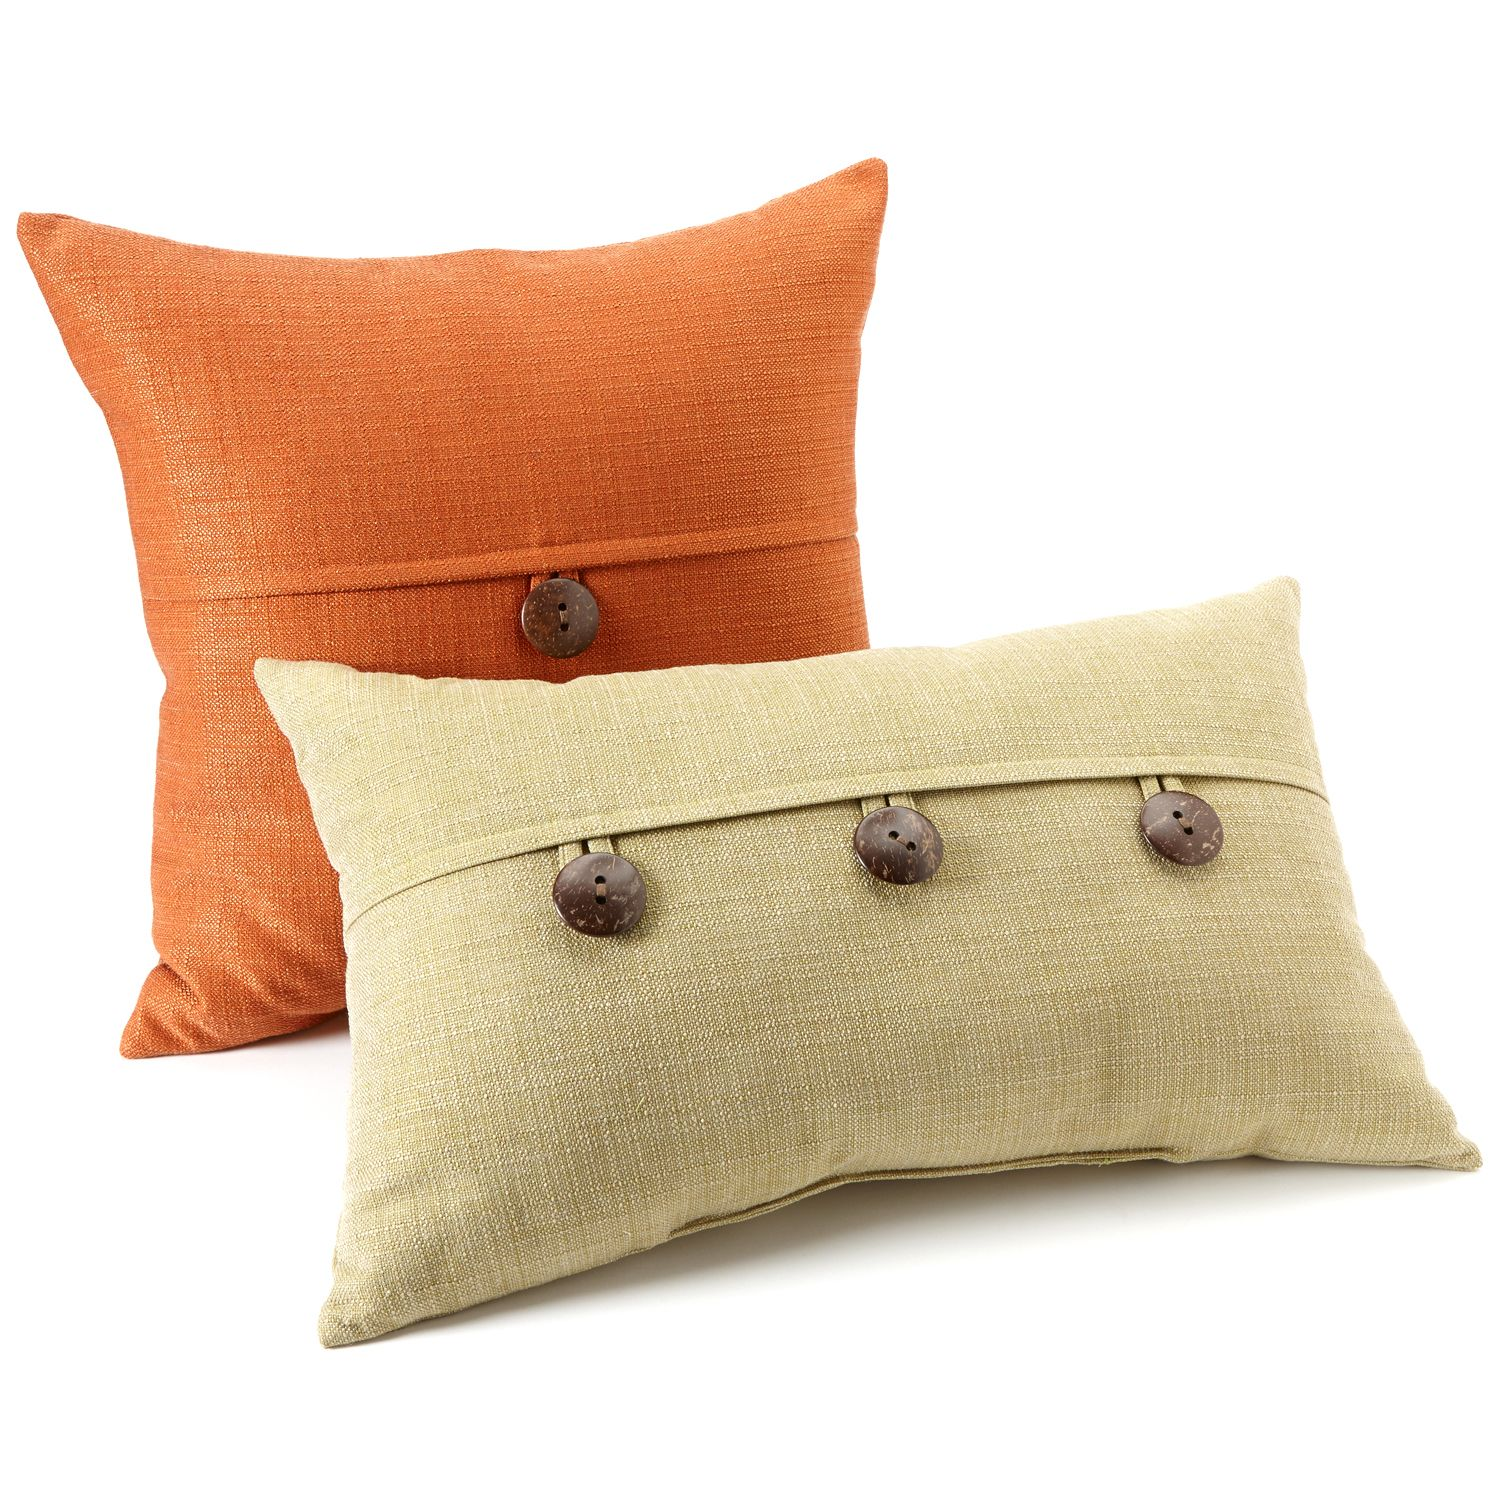 Home goods decorative pillow - Trendy Dynasty Decorative Pillow With Home Goods Decorative Pillows